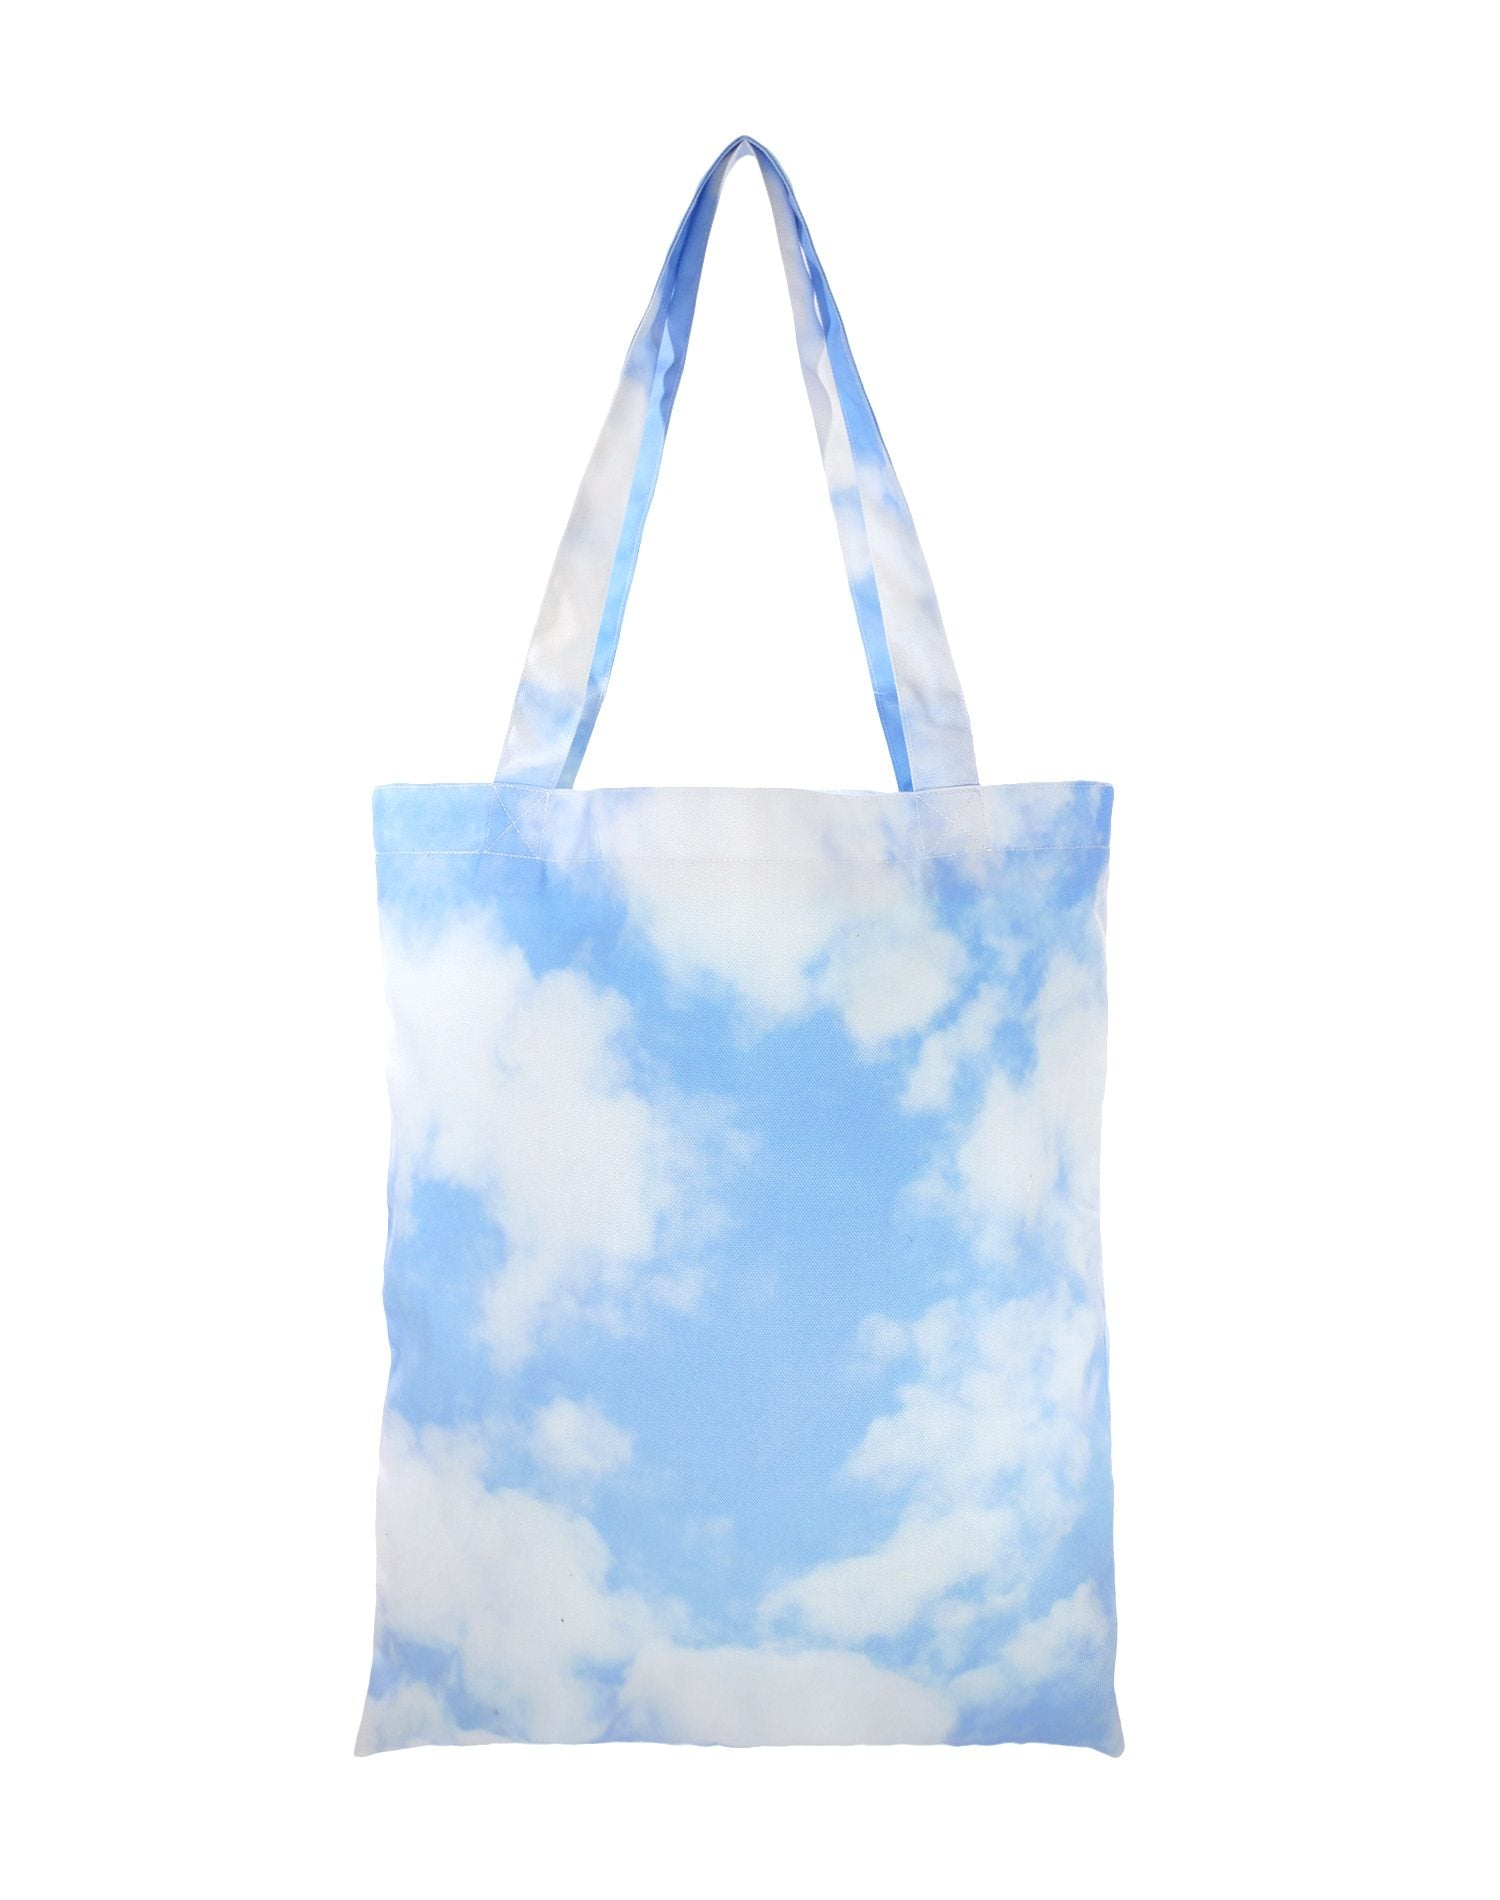 In The Cloud Canvas Tote Bag.藍天白雲帆布側背袋